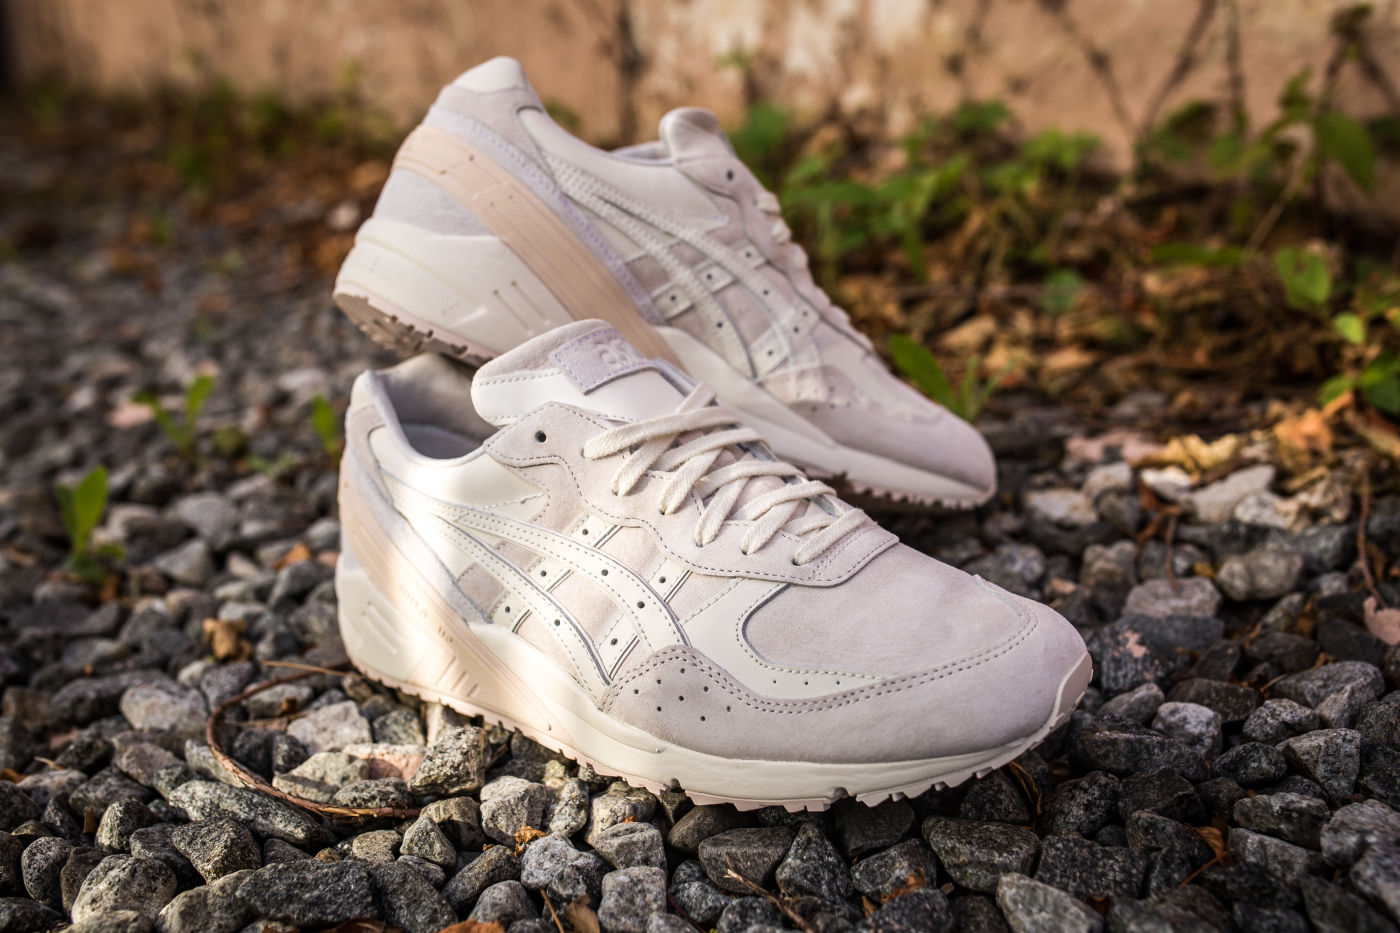 The Asics Gel Sight 'Blush' Drops at Midnight WearTesters